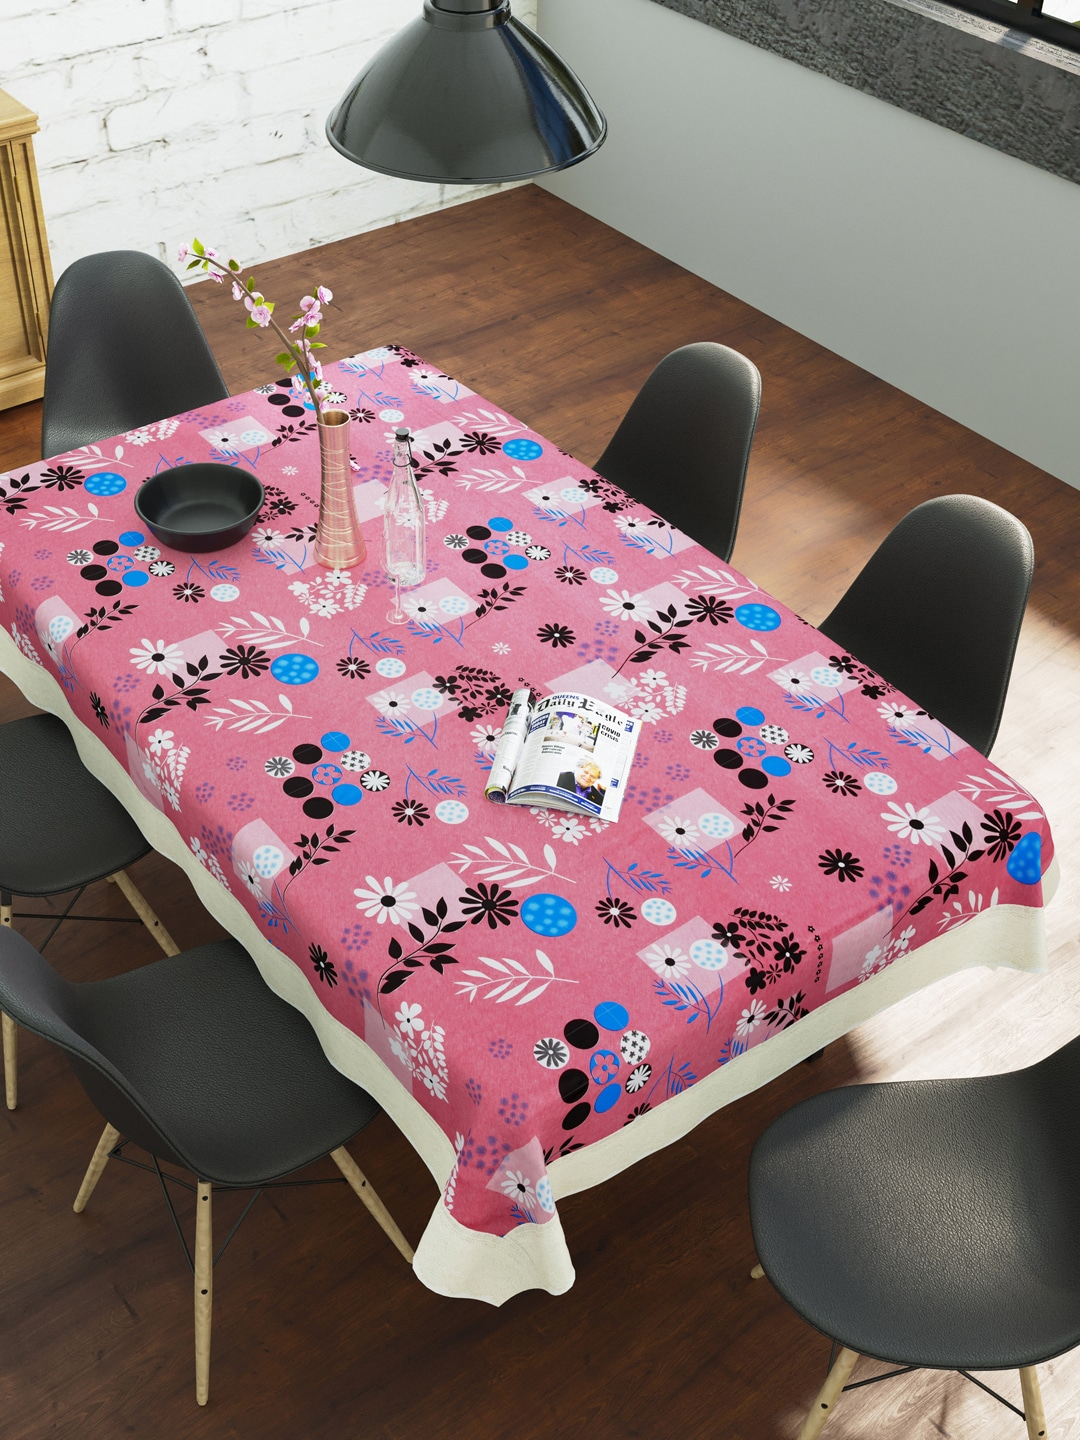 Clasiko Pink   Black Floral Printed 6 Seater Table Cover